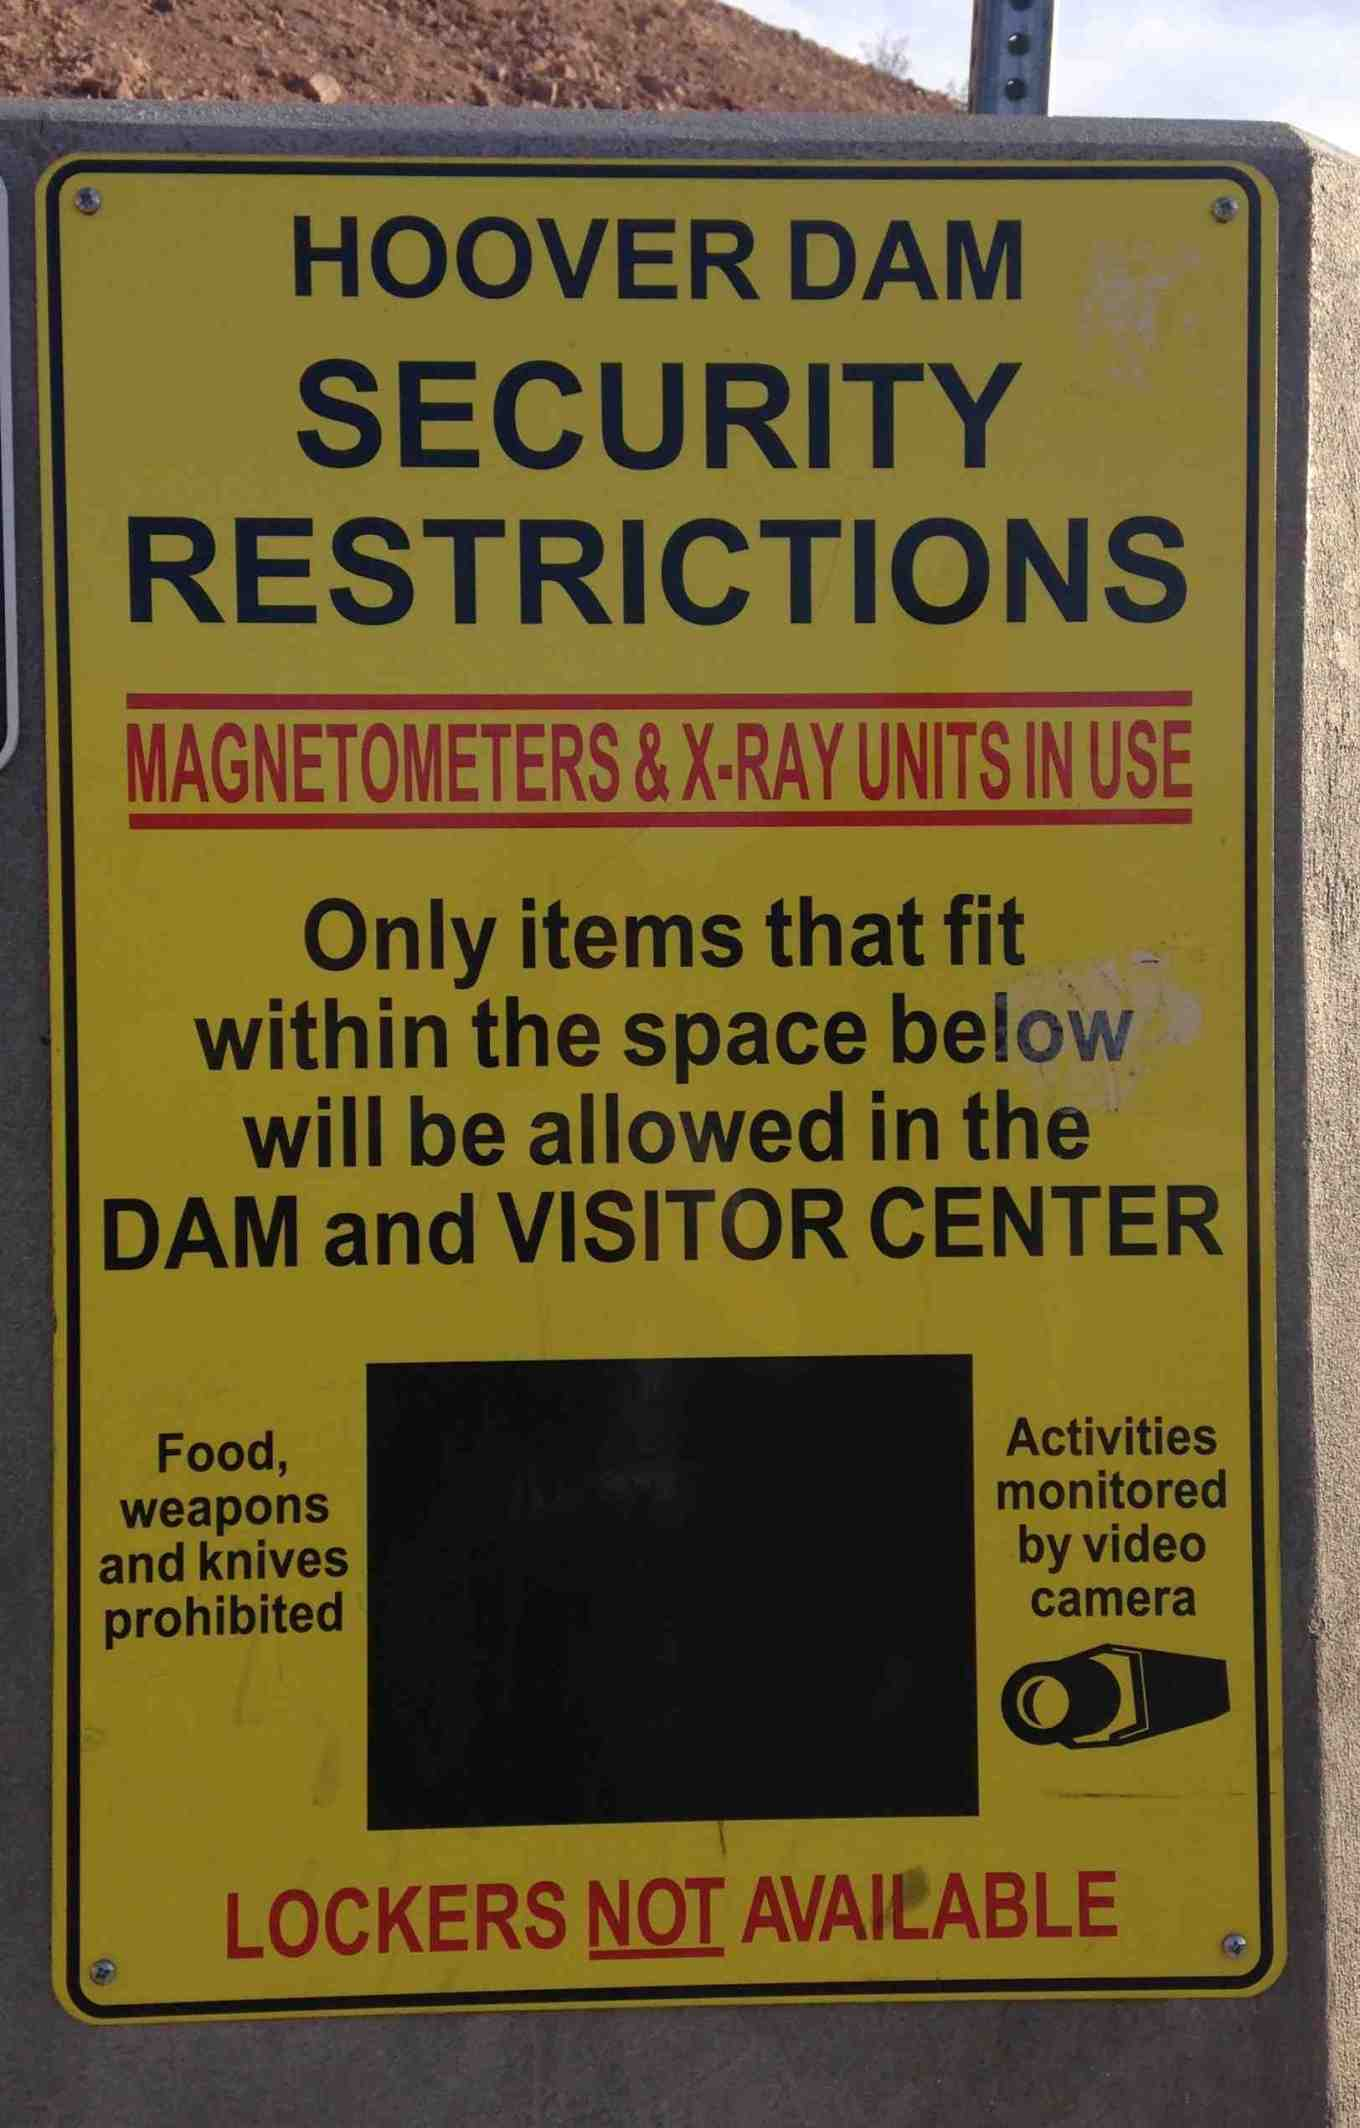 SECURITY RESTRICTIONS